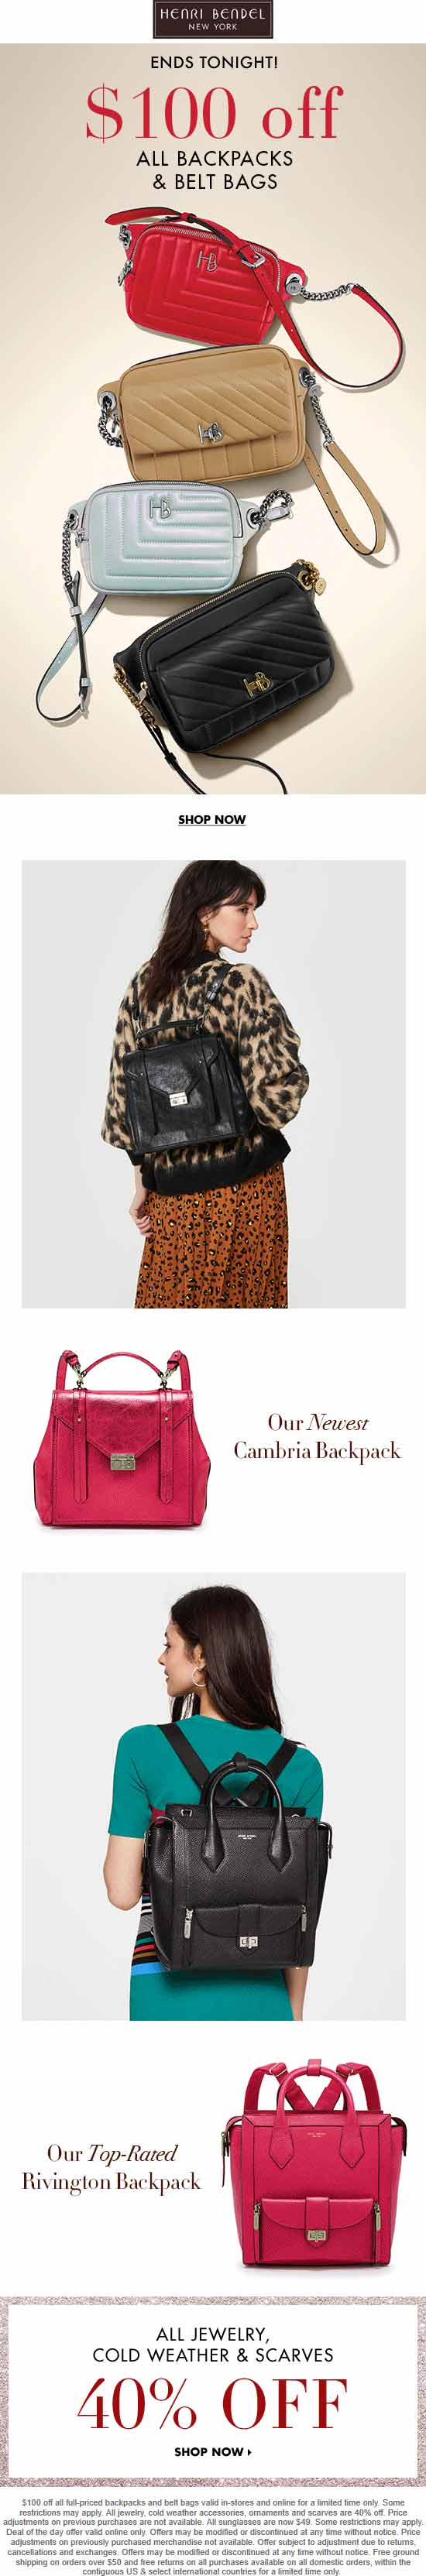 Henri Bendel Coupon December 2019 $100 off backpacks & belt bags today at Henri Bendel, ditto online